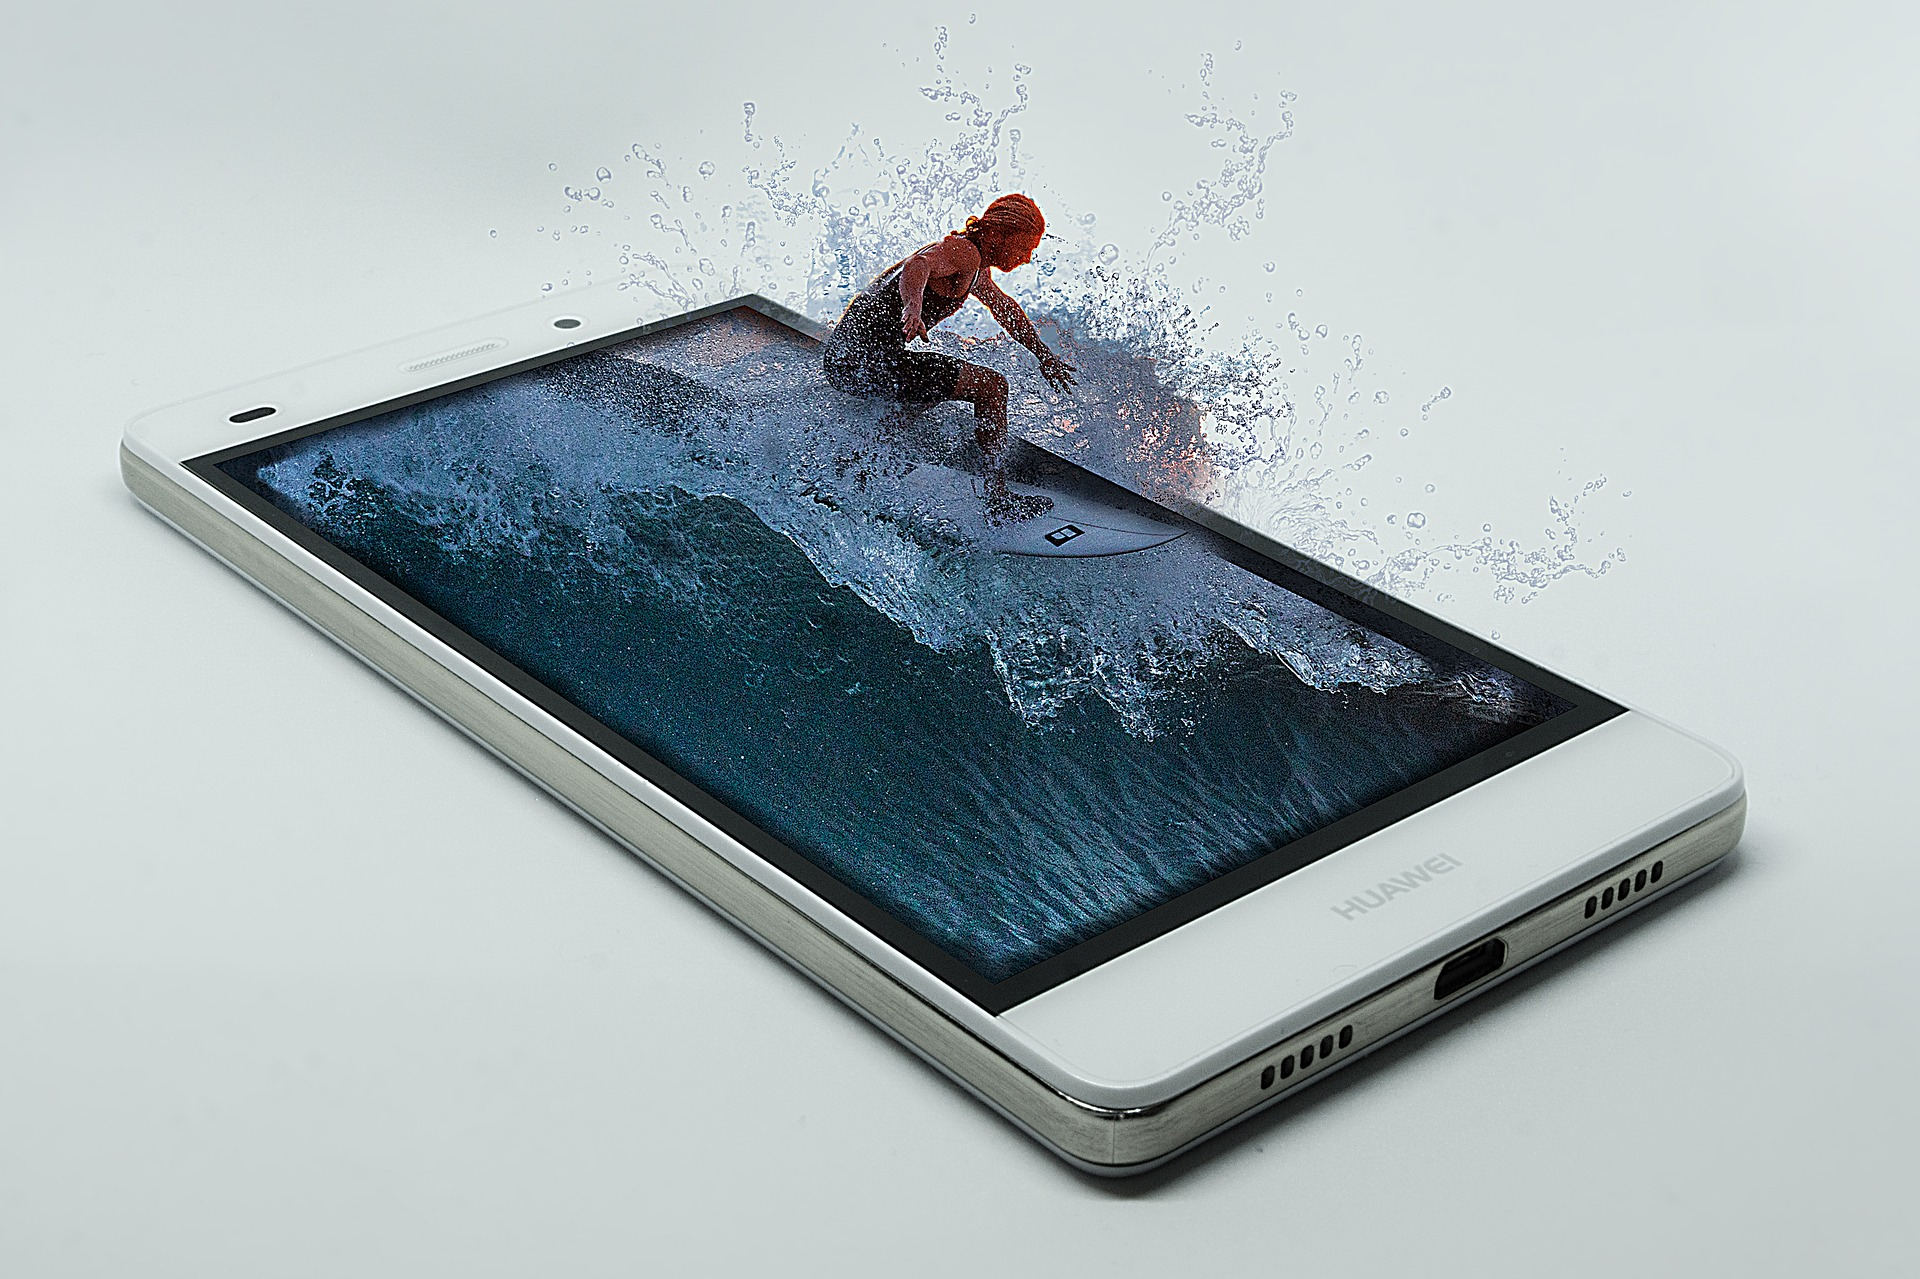 Dived in Water? Sell Damaged iPhone!